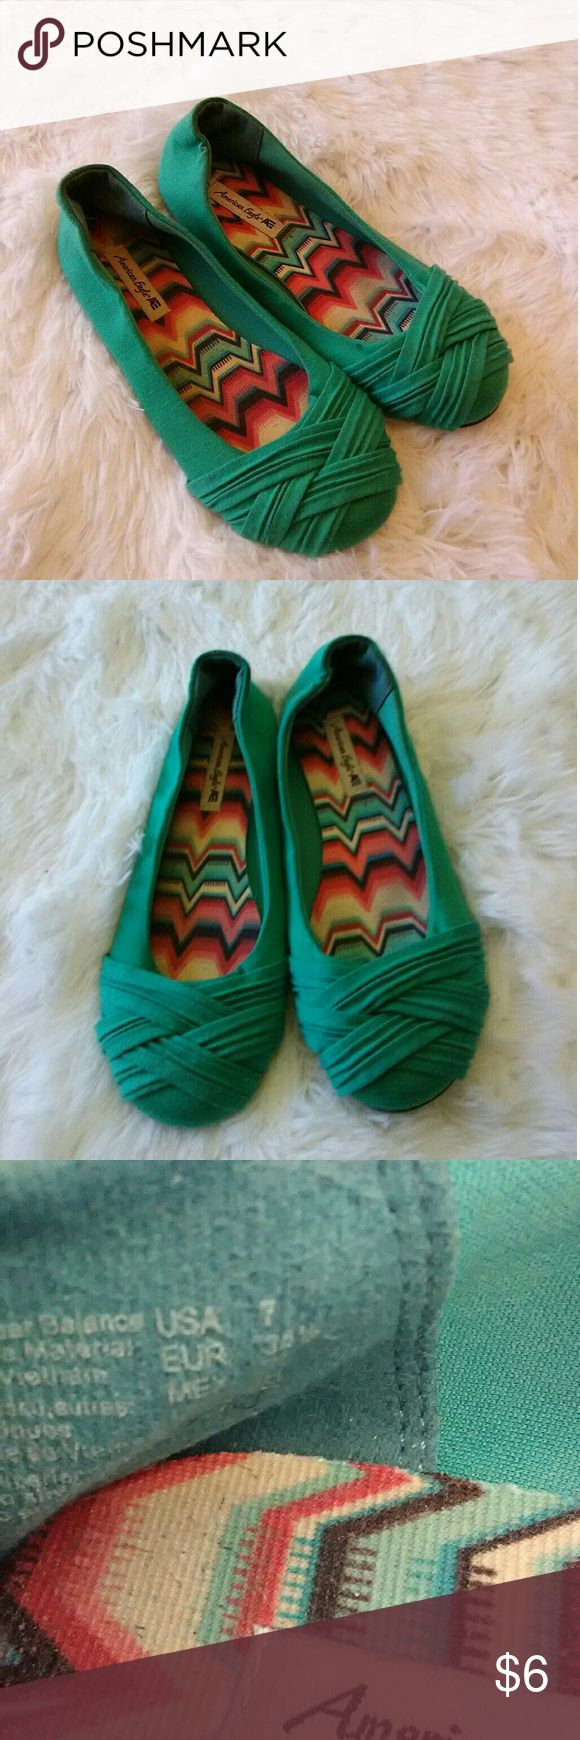 Teal Flats American eagle brand. Good pre-owned condition. If you have any questions or would like additional pictures feel free ask American Eagle Outfitters Shoes Flats & Loafers